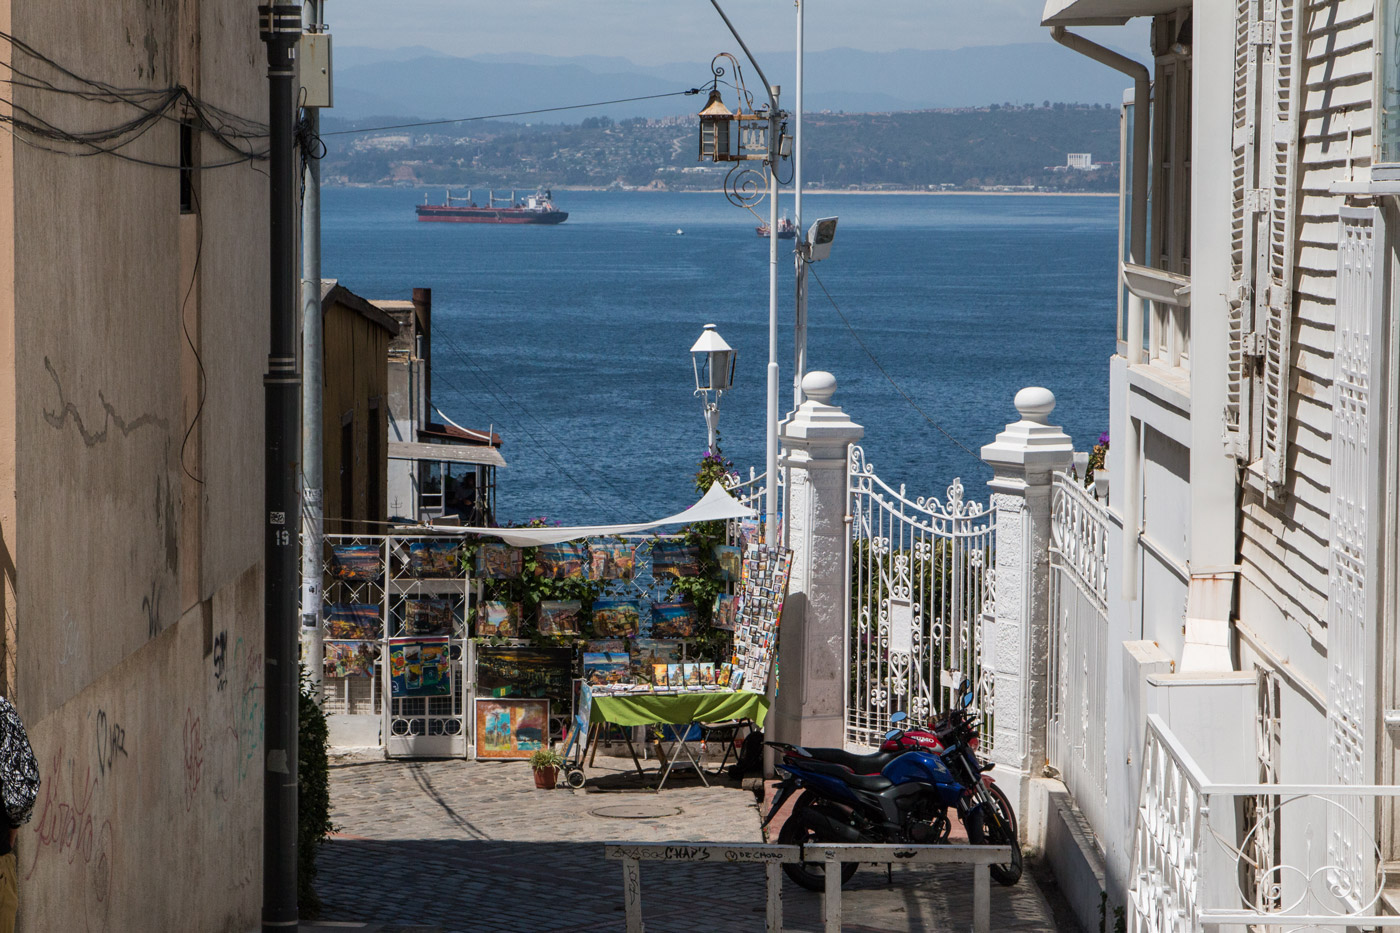 Looking down to the sea from the hillside neighbourhoods